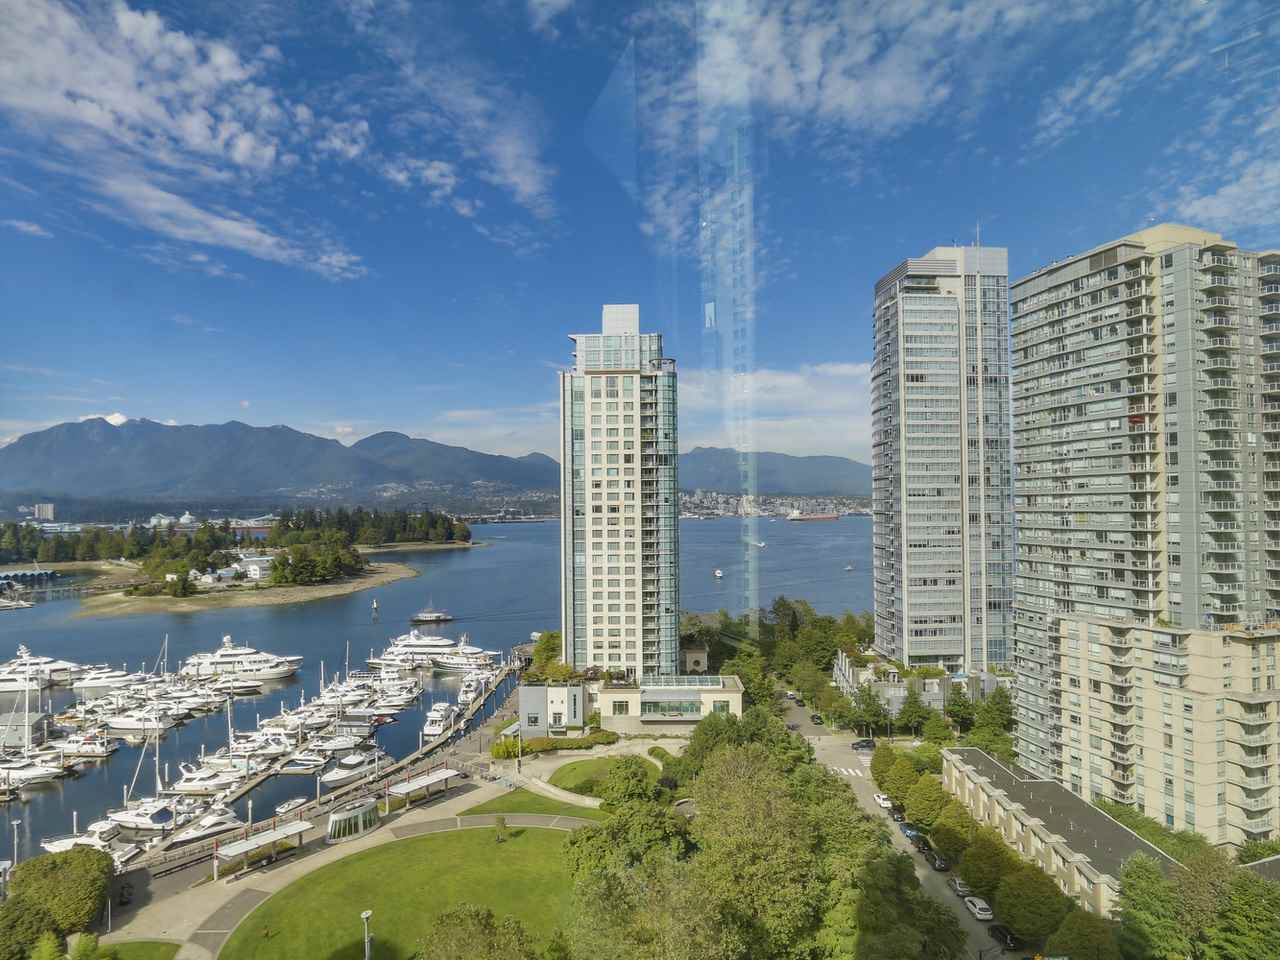 Oceanfront living at its finest! Sweeping FLOOR-TO-CEILING WINDOWS provide panoramic vistas of Burrard Inlet, the North Shore Mountains, and Stanley Park. Unit tastefully upgraded with bamboo flooring, stainless steel appliances, quartz countertops, mosaic glass backsplash in kitchen and marble tiling throughout spa-inspired bathroom. HIGHLY EFFICIENT FLOOR PLAN with absolutely no wasted space and ample natural light. Meticulous strata with MASSIVE CONTINGENCY RESERVE FUND and FIRST RATE AMENITIES, including theatre room, billiards table, party room, exercise centre, swimming pool/hot tub, rooftop patio, and expansive private gardens. On-site caretaker and ample visitor parking. Pets & rentals welcome!